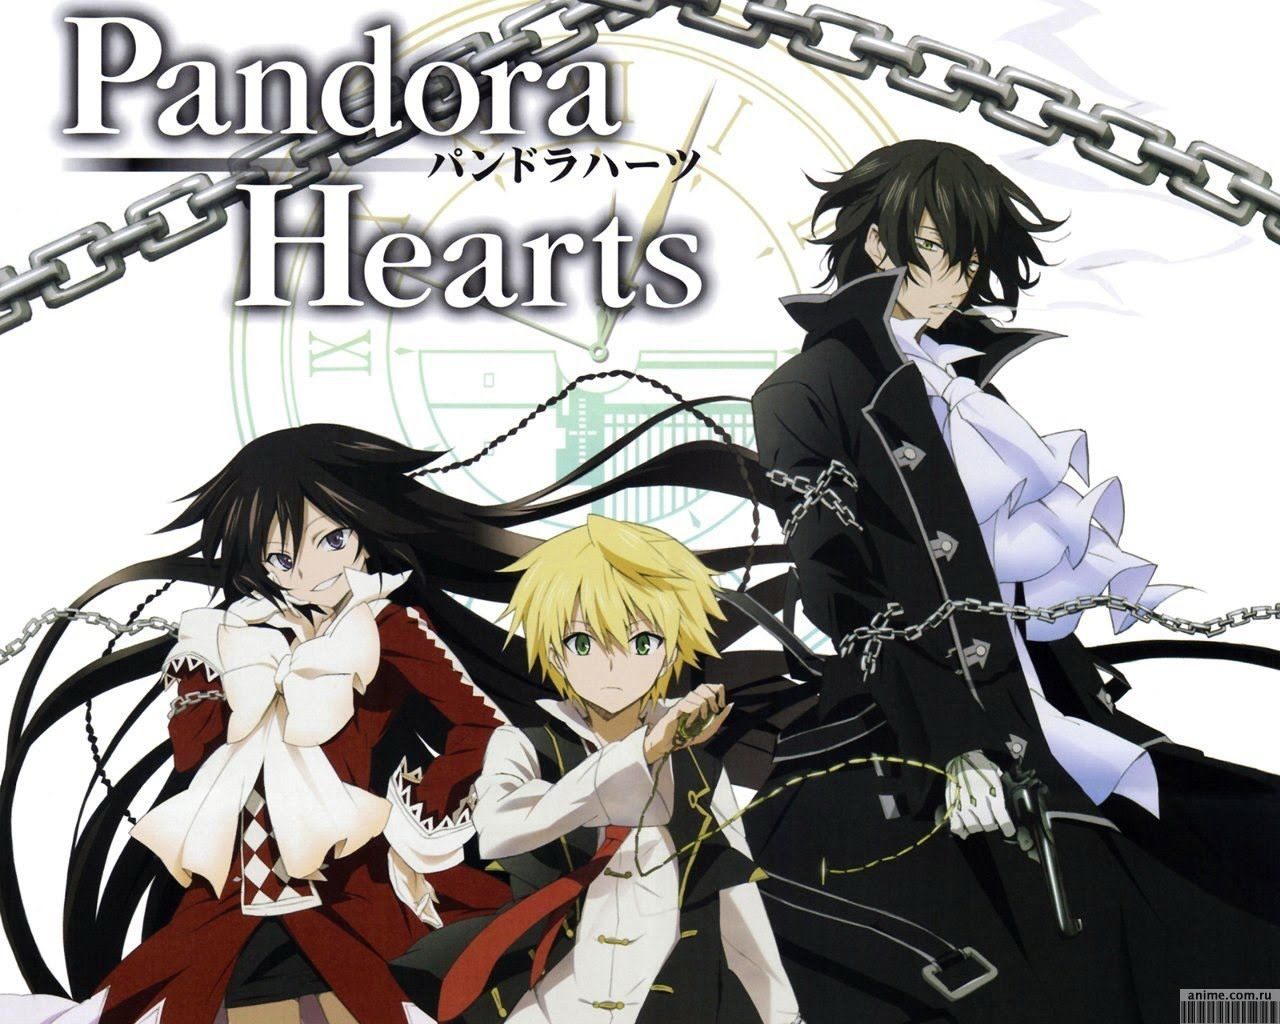 Pandora Hearts A Boy Named Oz Is Cast Into The Prison Known As